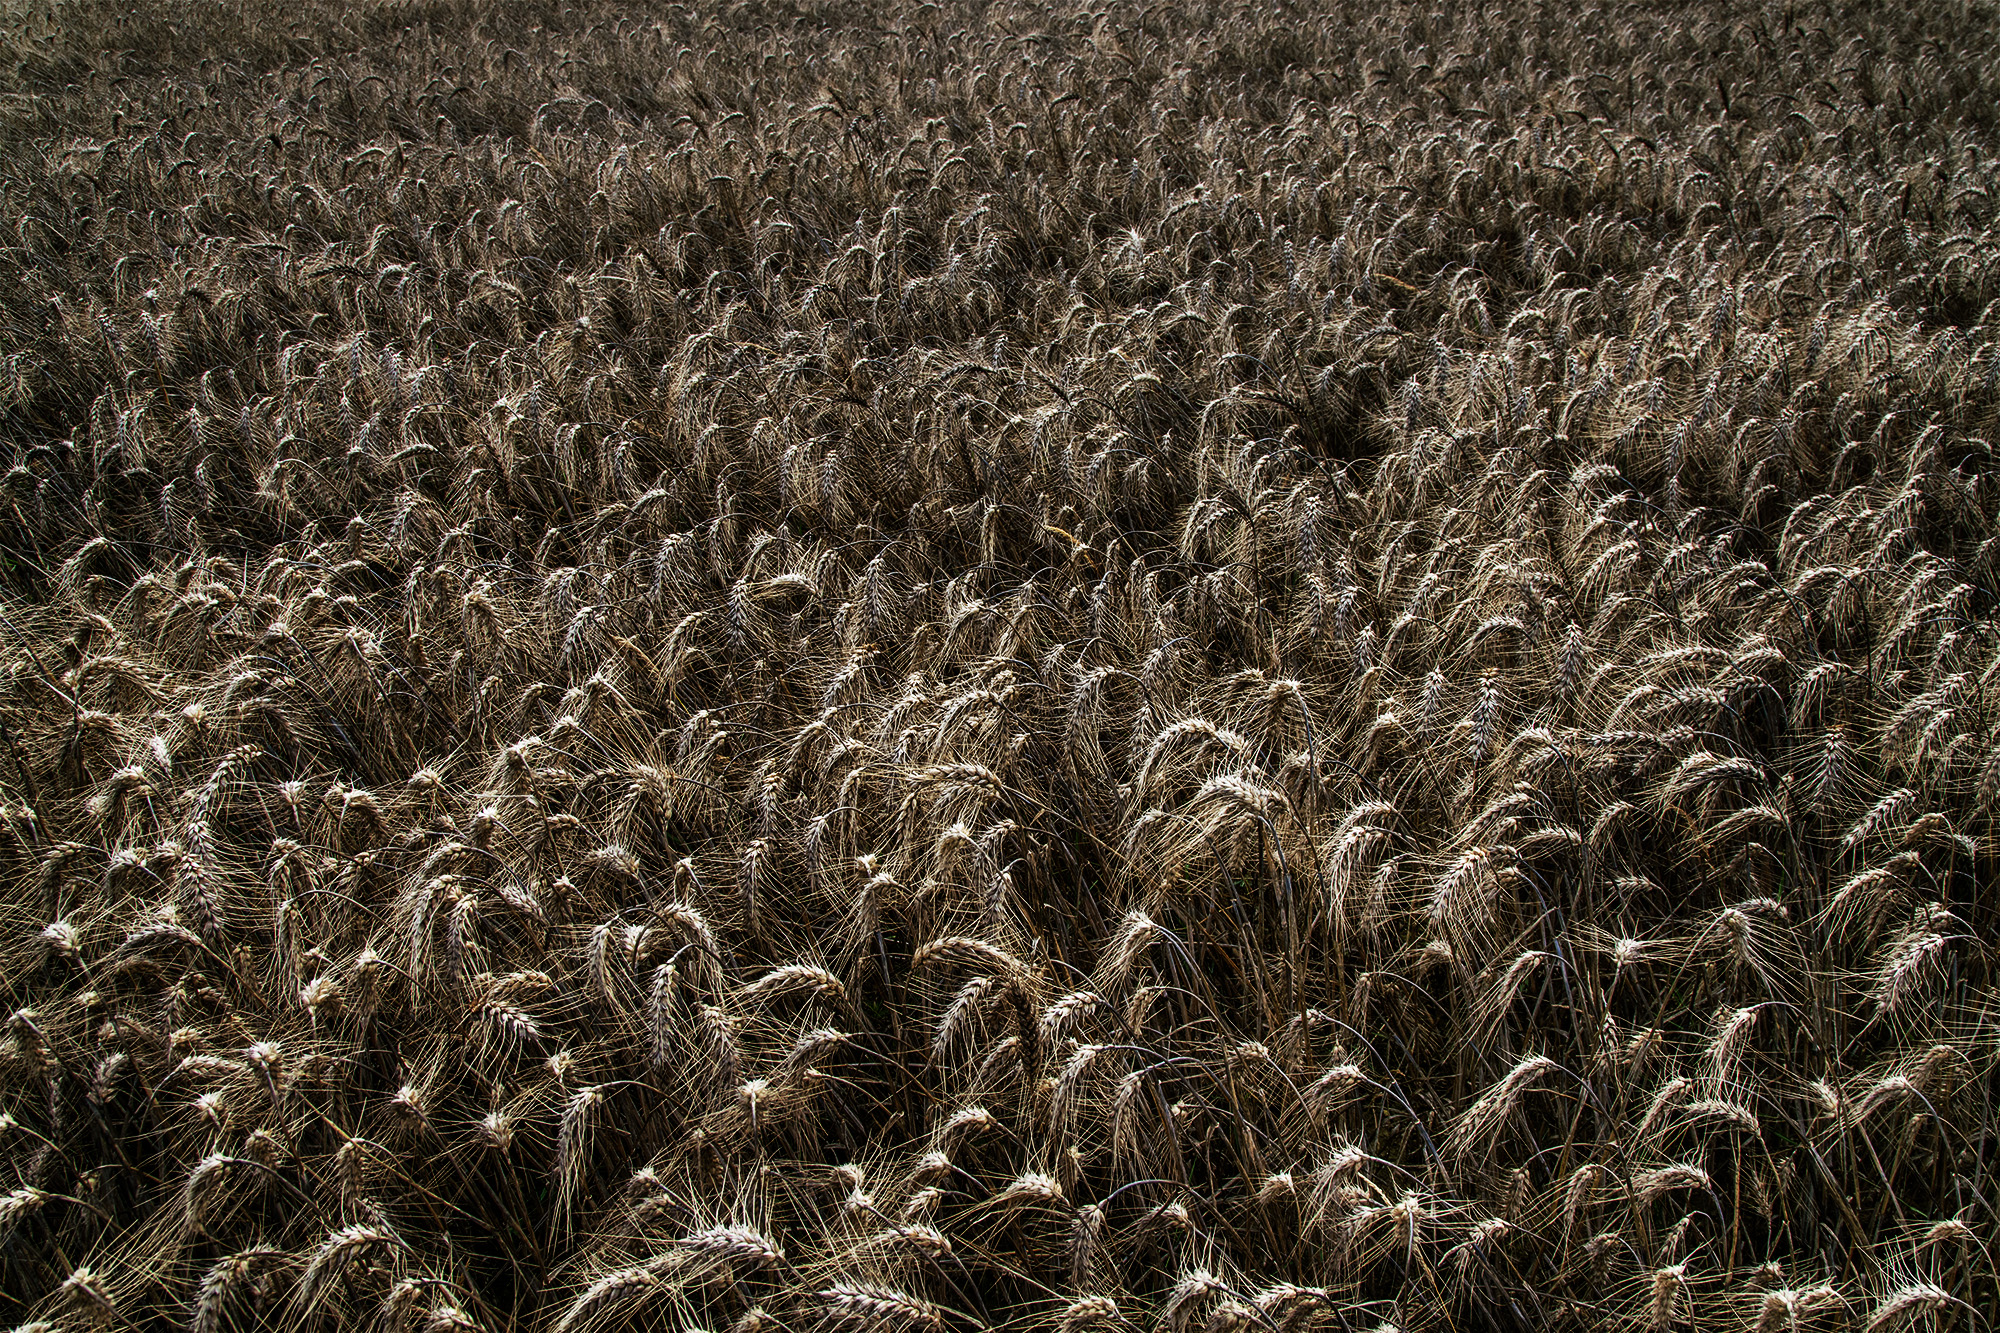 Brittany_2017_Wheat_Field-048color.jpg